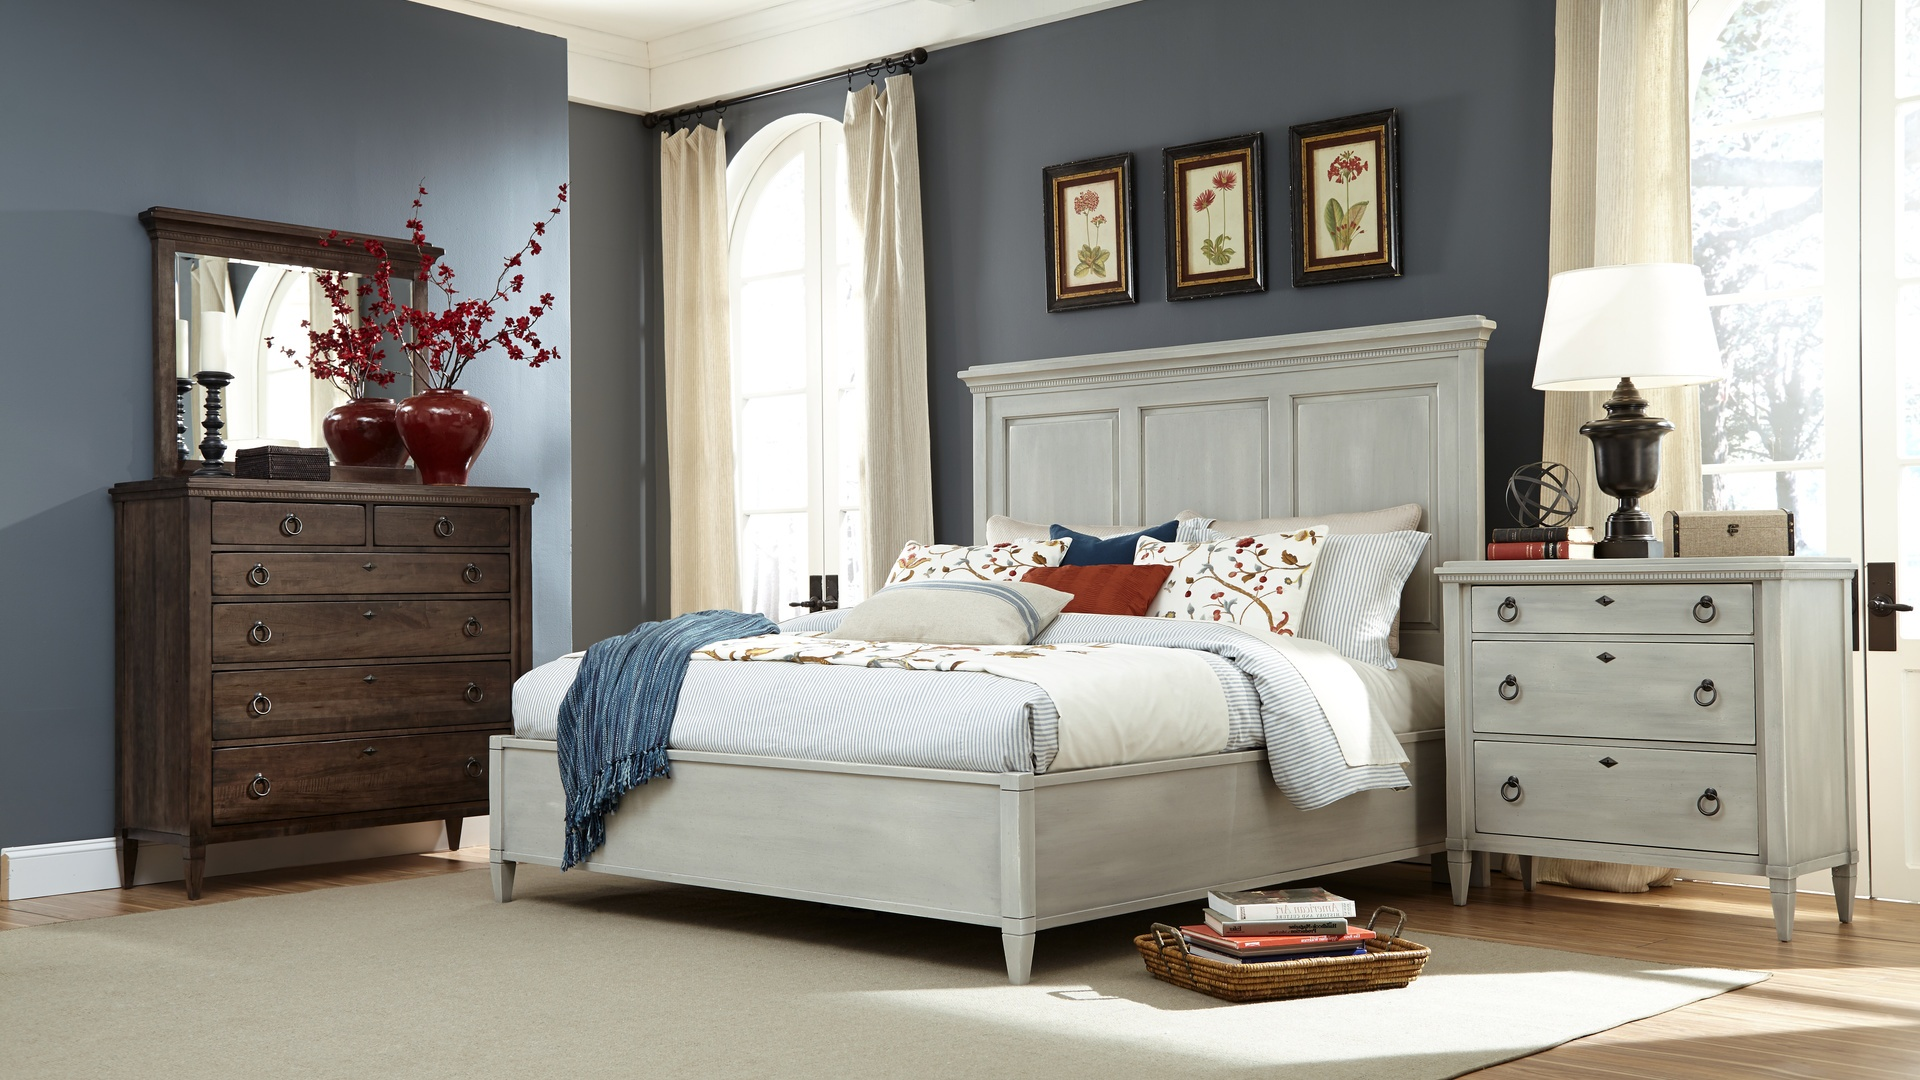 Furniture Stores In Ontario Canada Home Durham Furniture